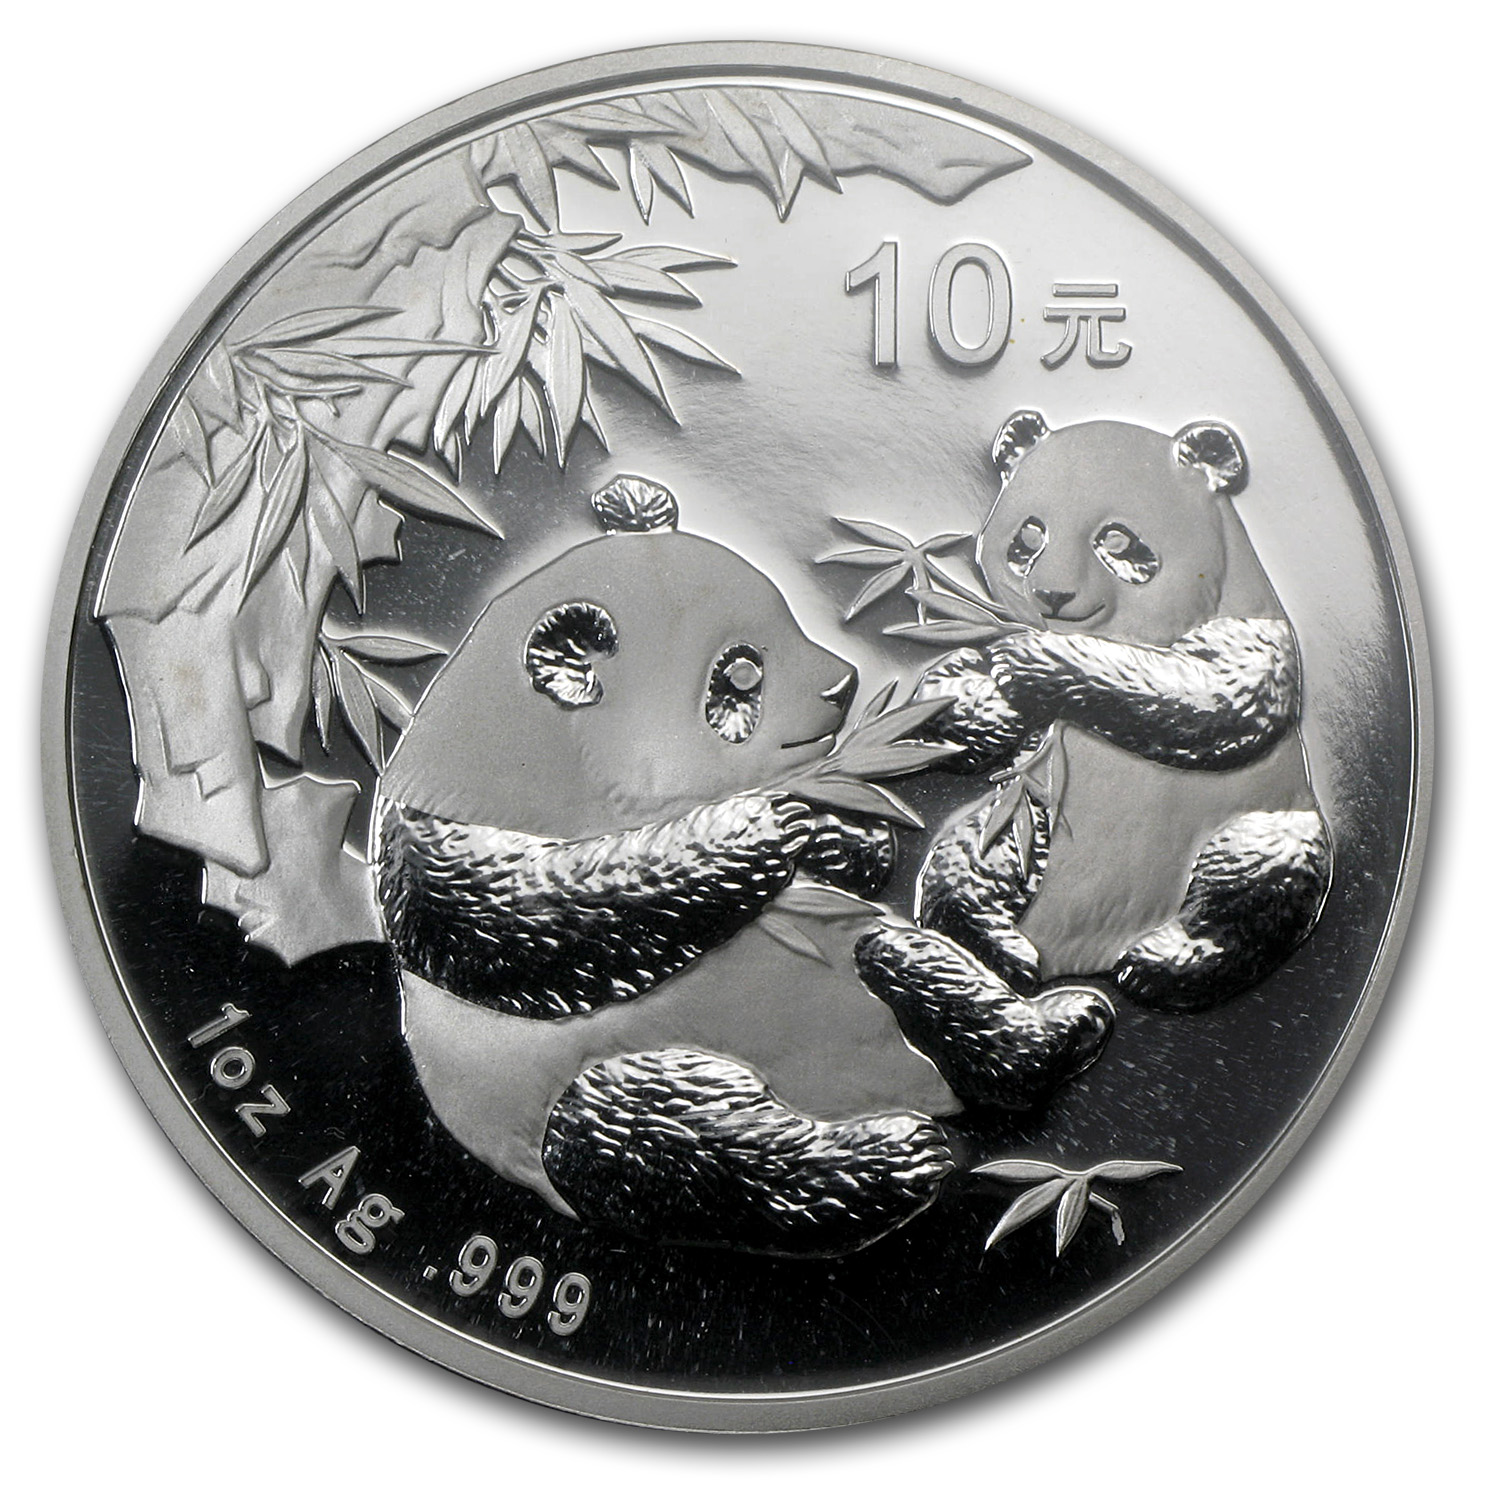 2006 1 oz Silver Chinese Panda - (In Capsule)